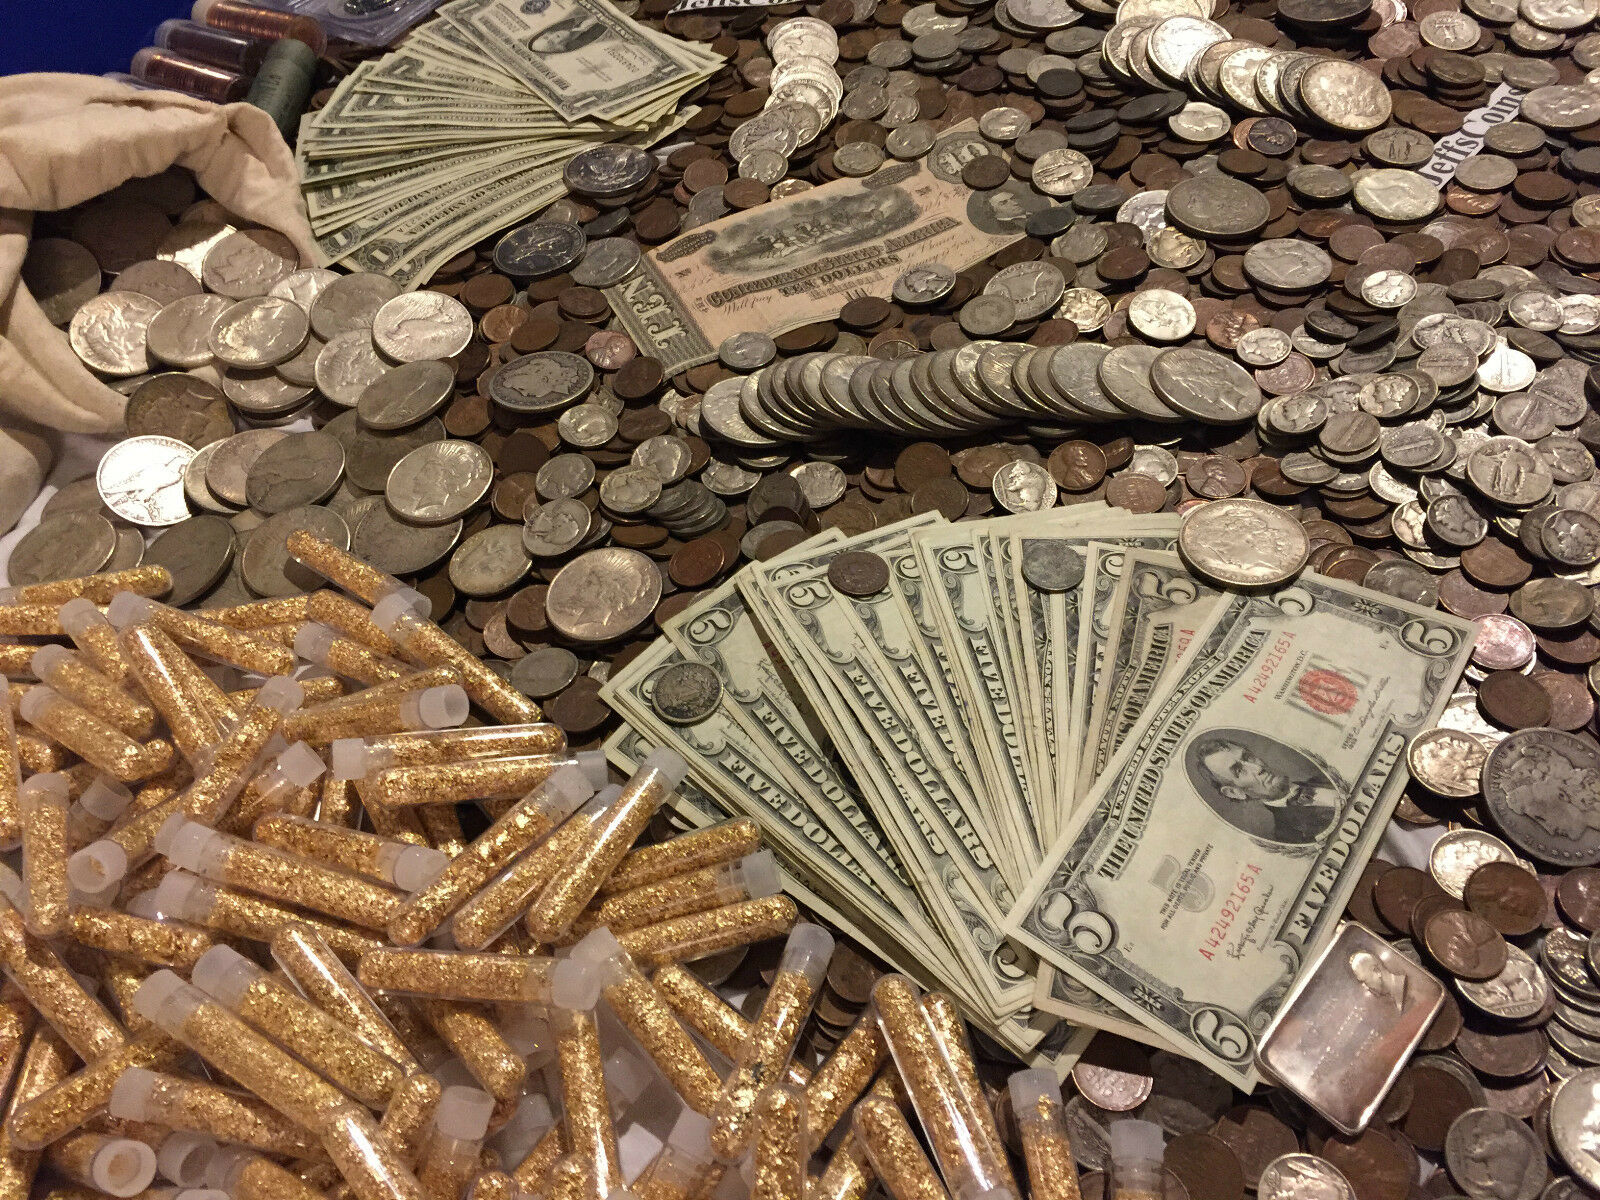 ✯ESTATE LOT OLD US COINS $✯GOLD .999 SILVER BARS BULLION✯ MONEY HOARD PCGS✯SALE✯